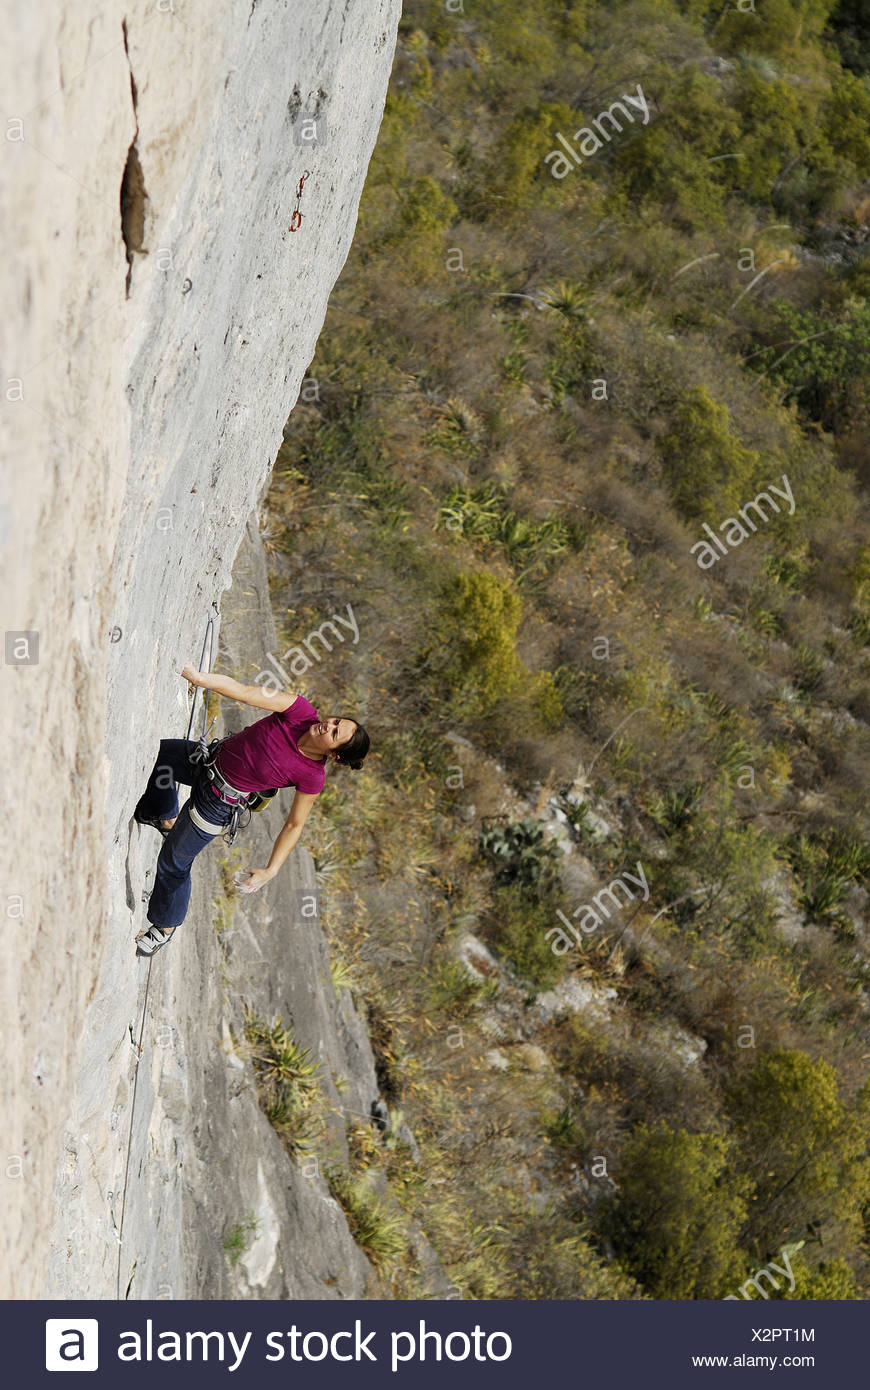 A rock climber ascends a steep rock face in Mexico. Stock Photo